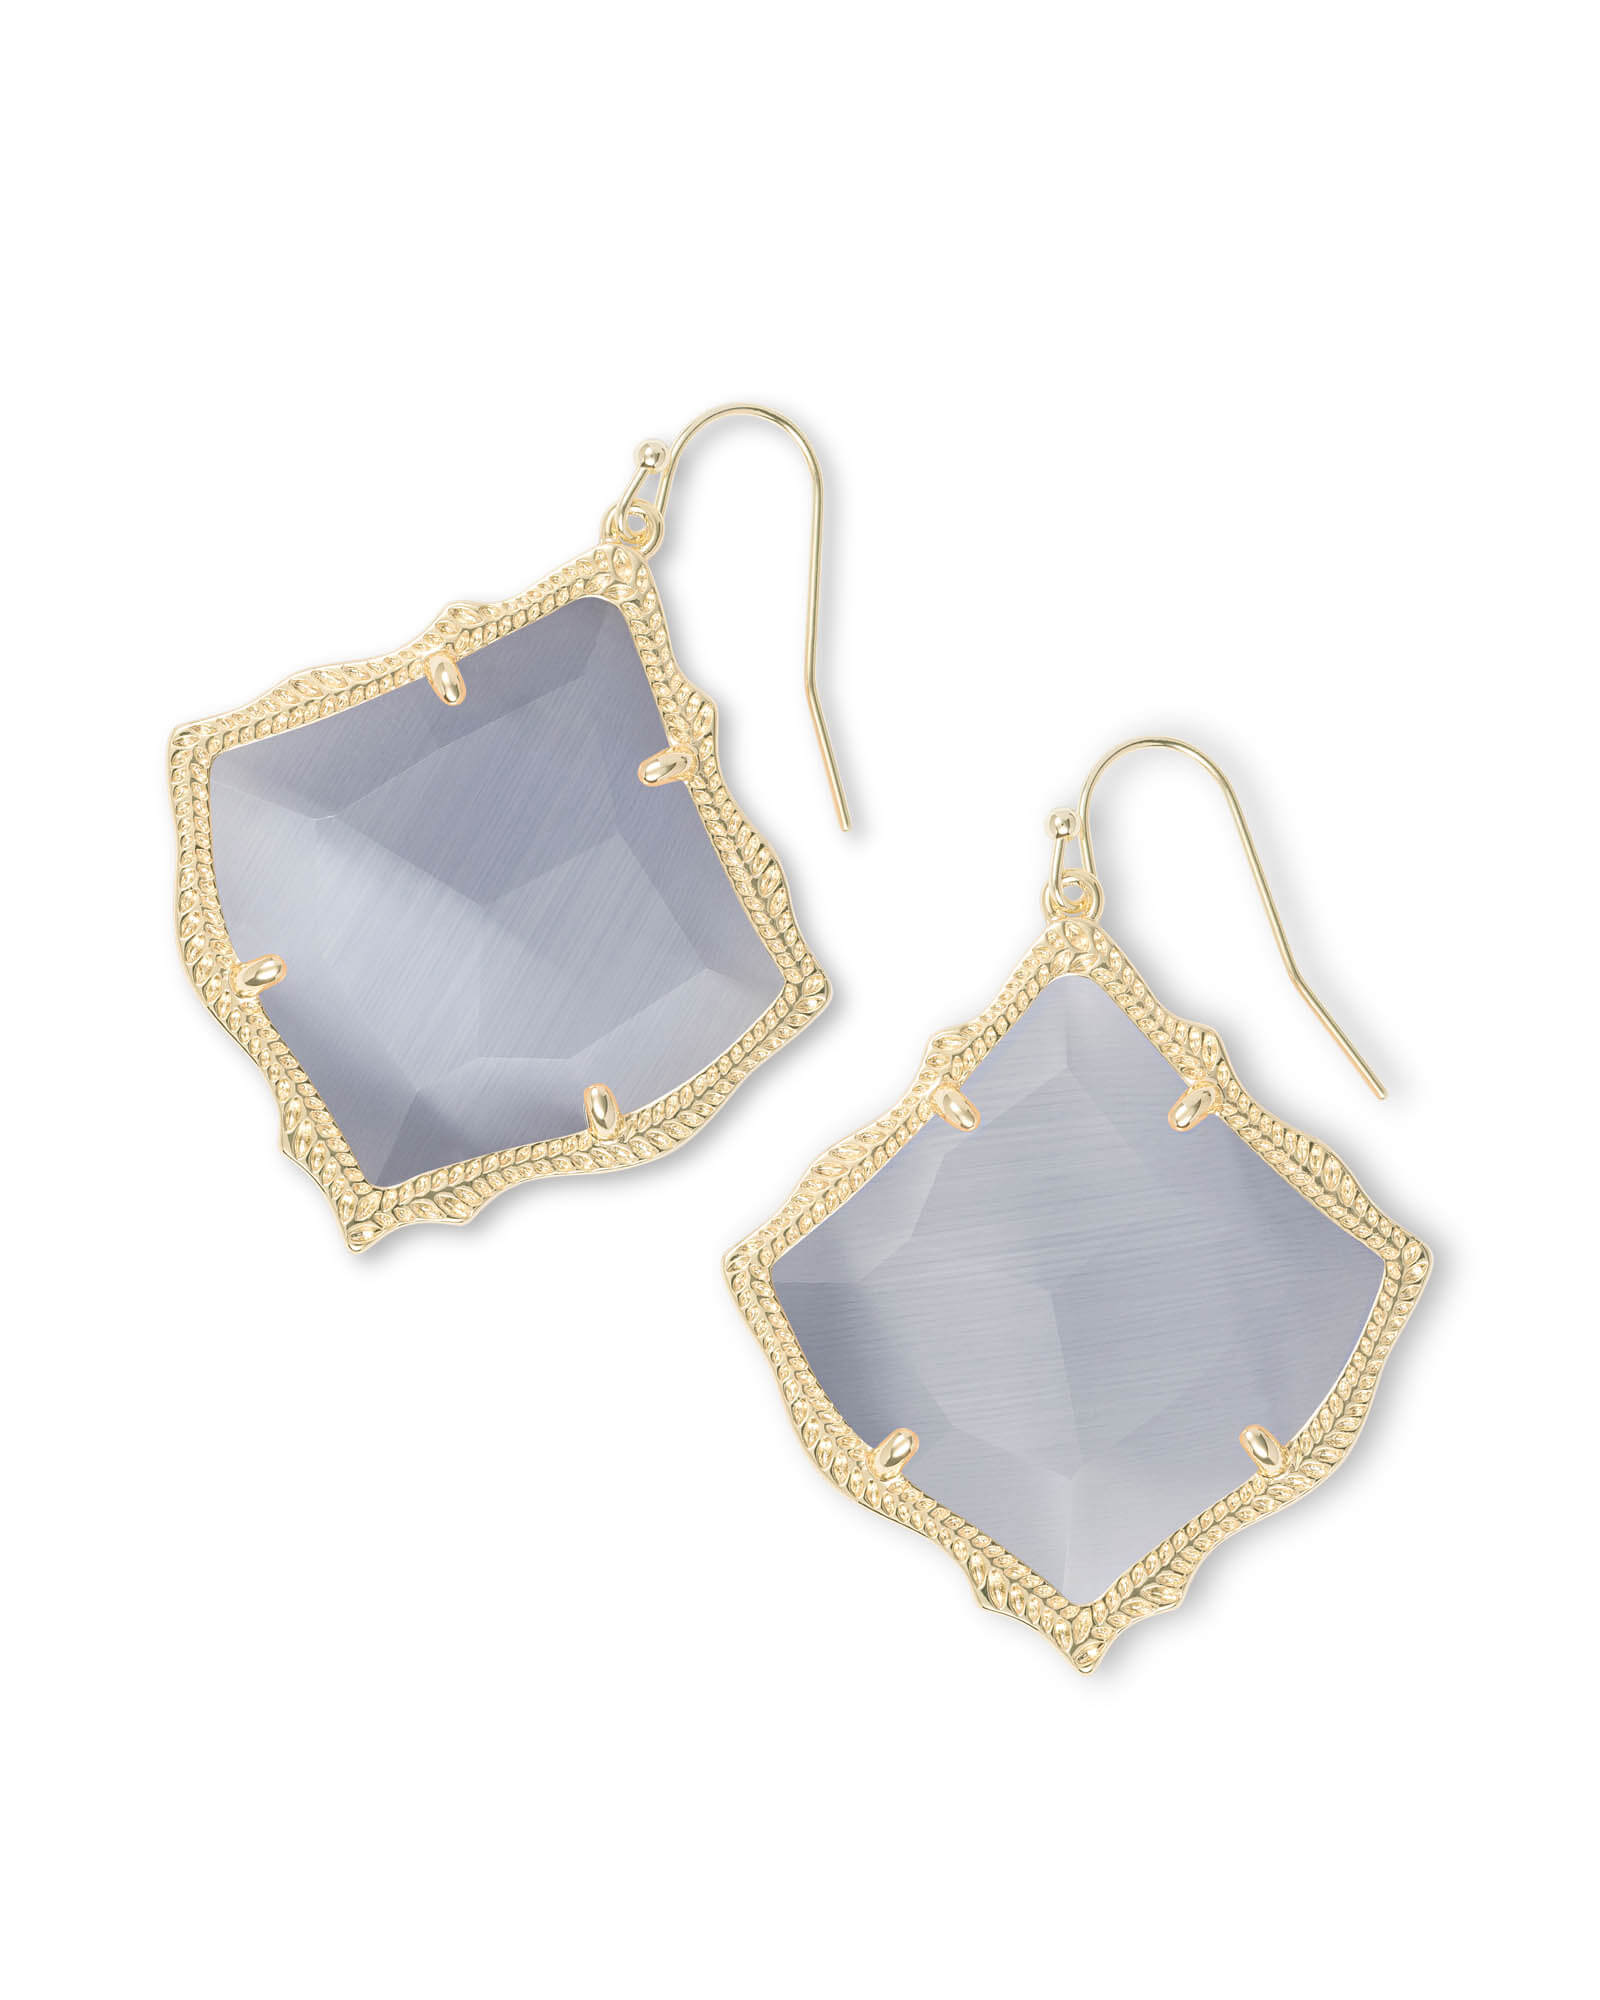 Kirsten Gold Drop Earrings in Slate Cats Eye